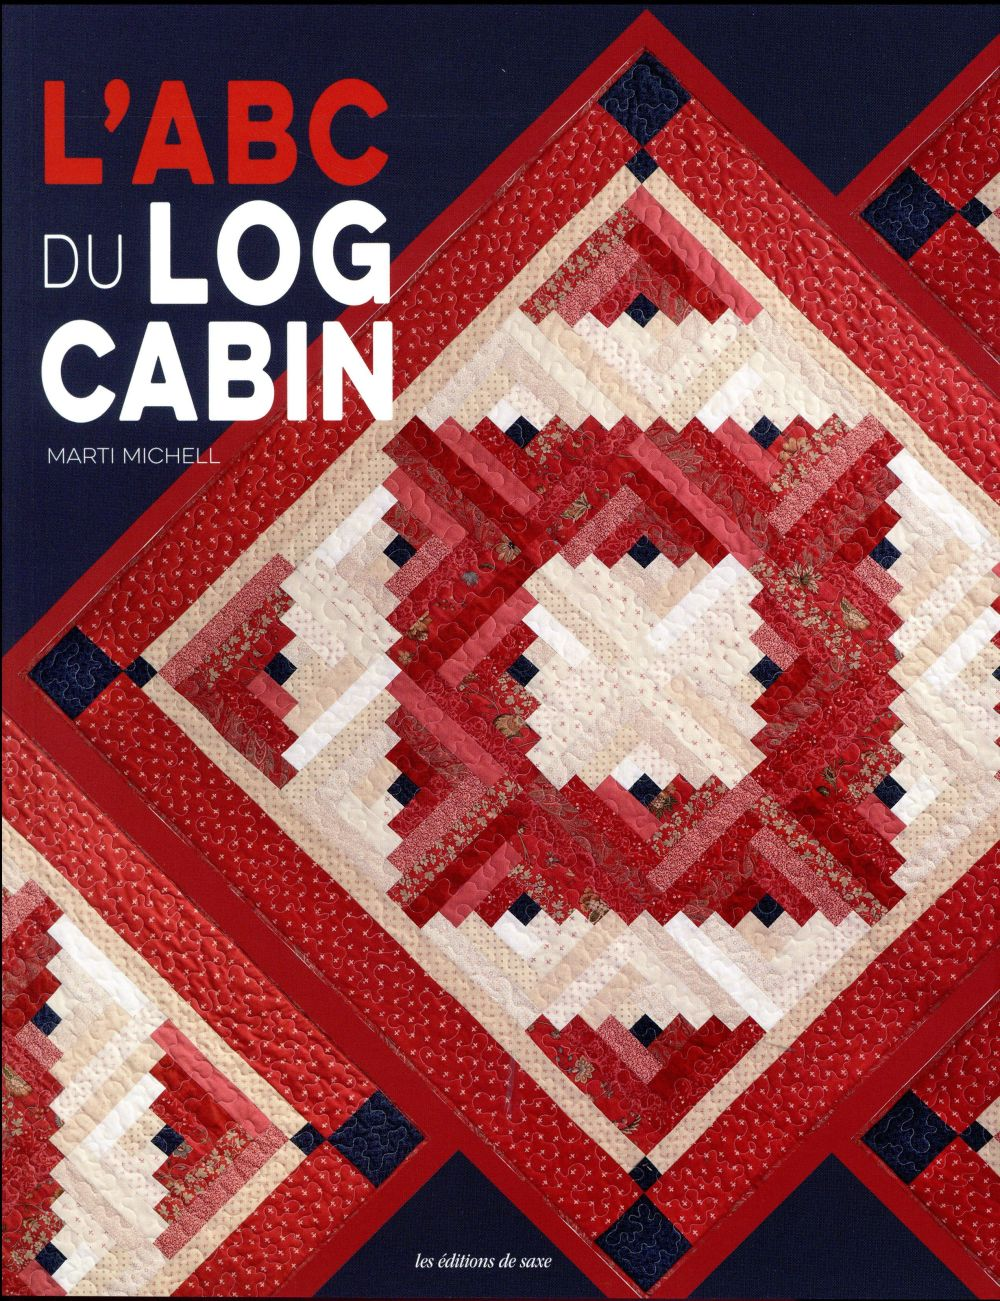 L'ABC DU LOG CABIN